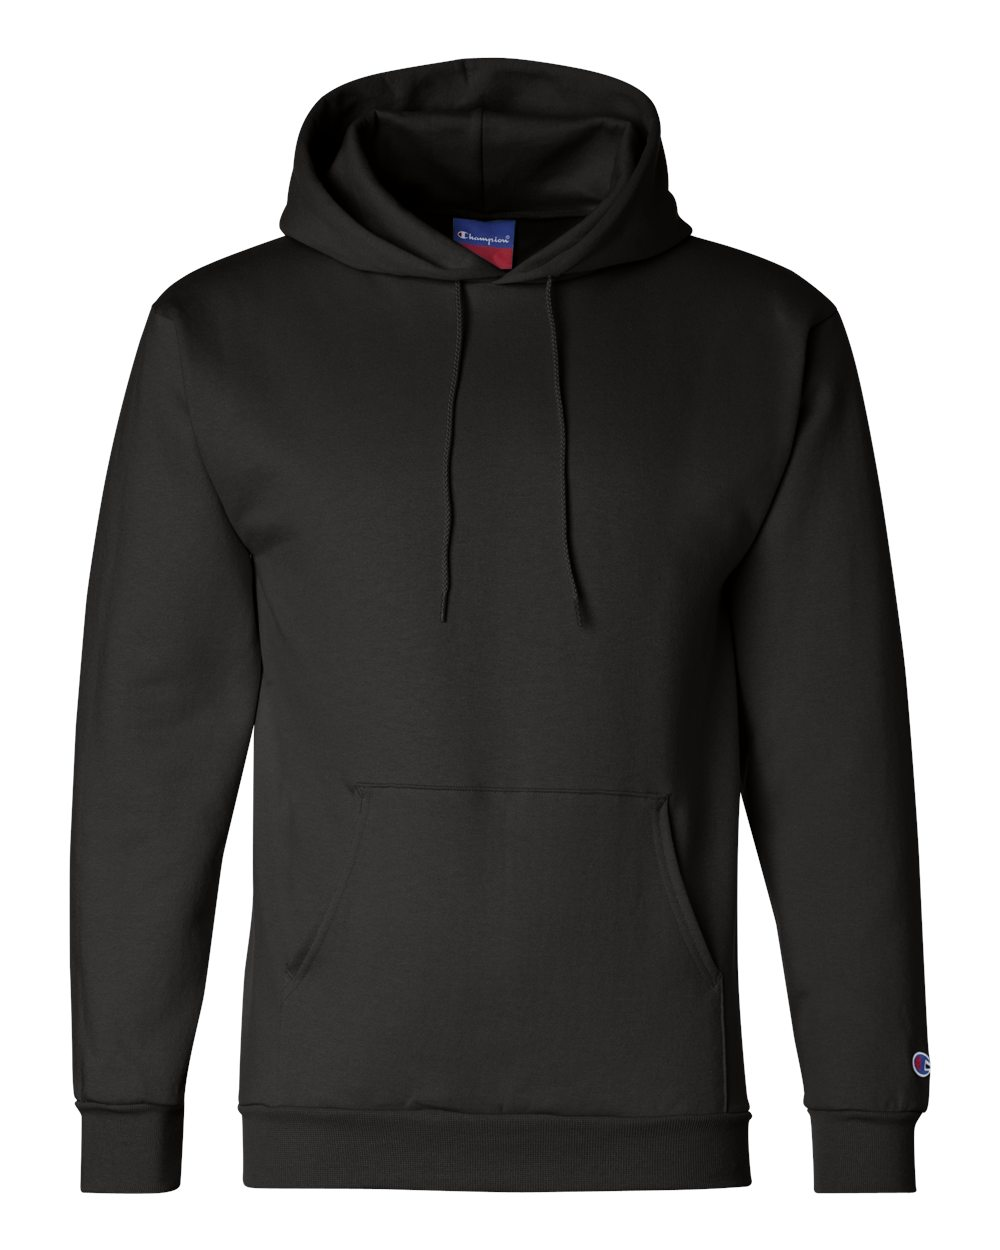 Champion-Mens-Double-Dry-Eco-Hooded-Sweatshirt-Hoodie-Pullover-S700-up-to-3XL miniature 6